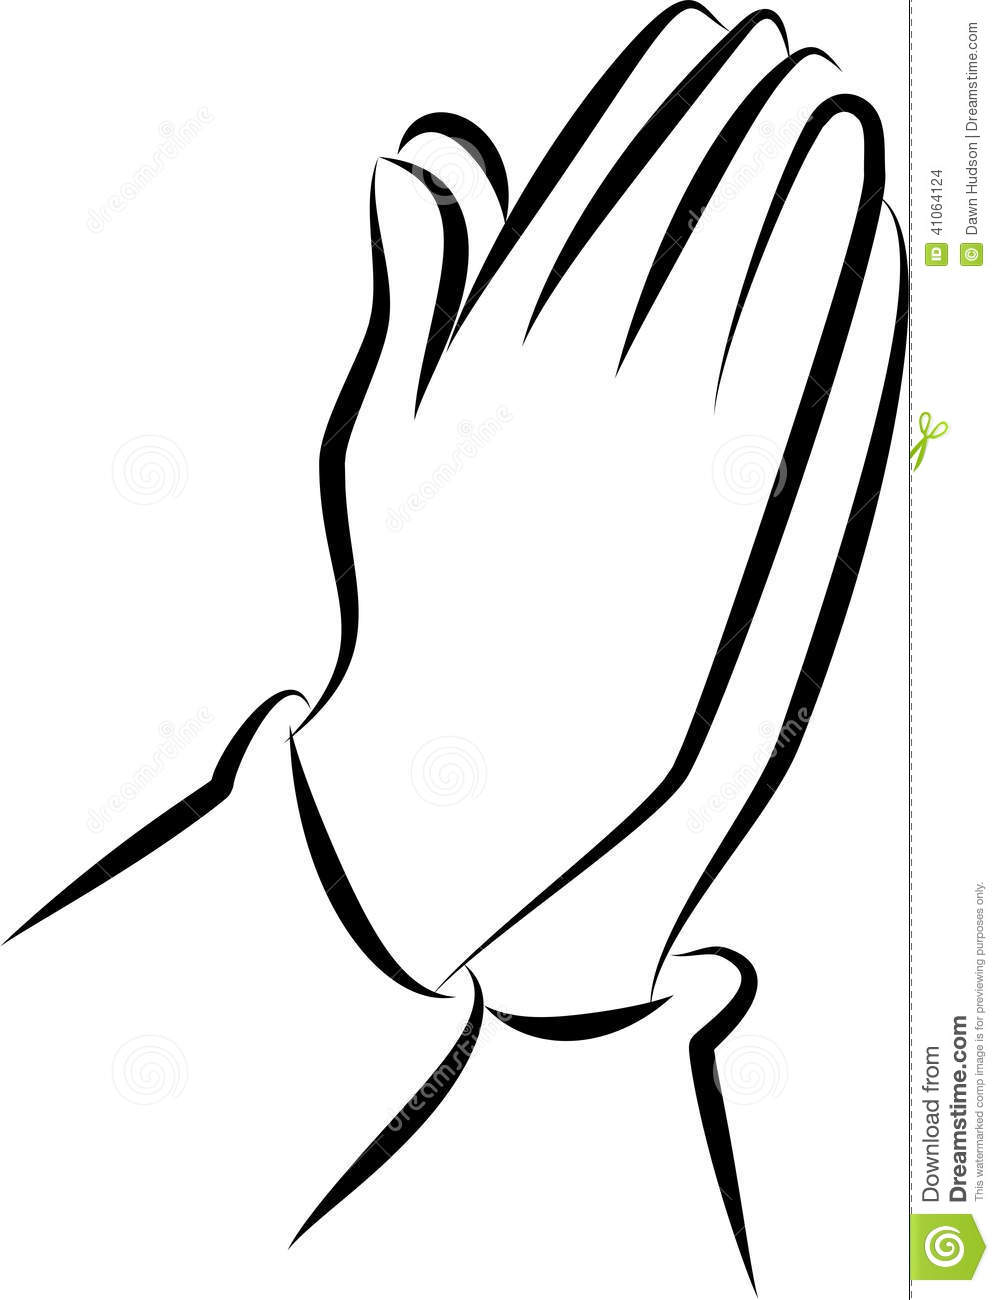 praying hands clip art stock illustration illustration of faith rh dreamstime com praying hands images clipart praying hands clip art free